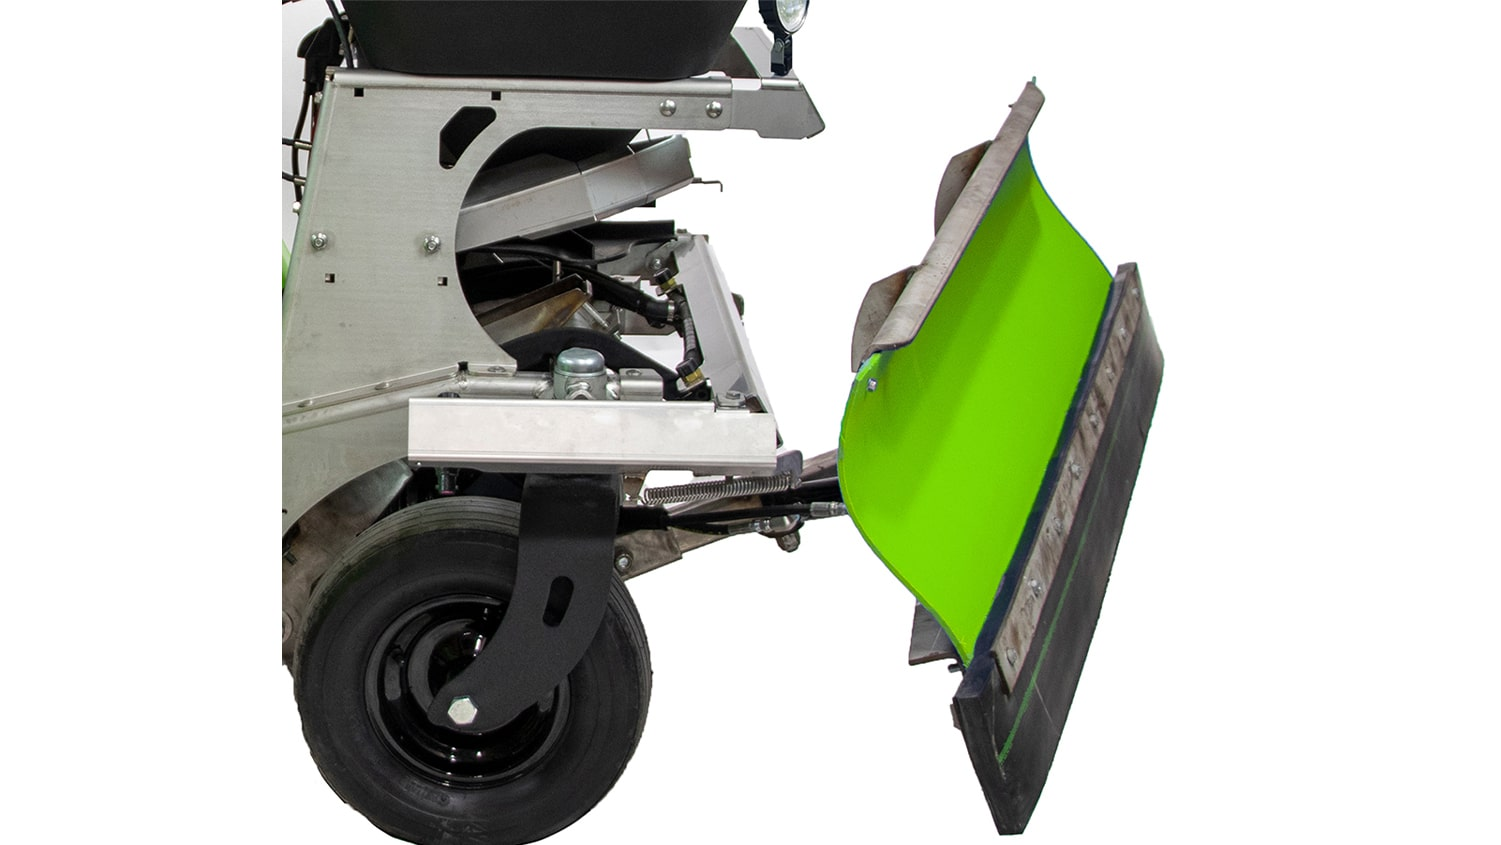 close up of steel green manufacturing spreader-sprayer with snowplow attachment